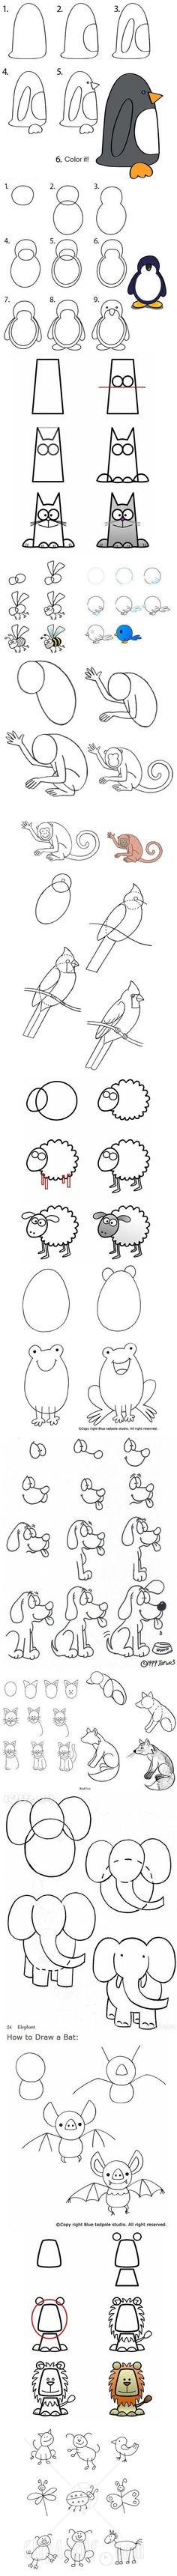 How to draw animals #kids #easy #cute #cartoon